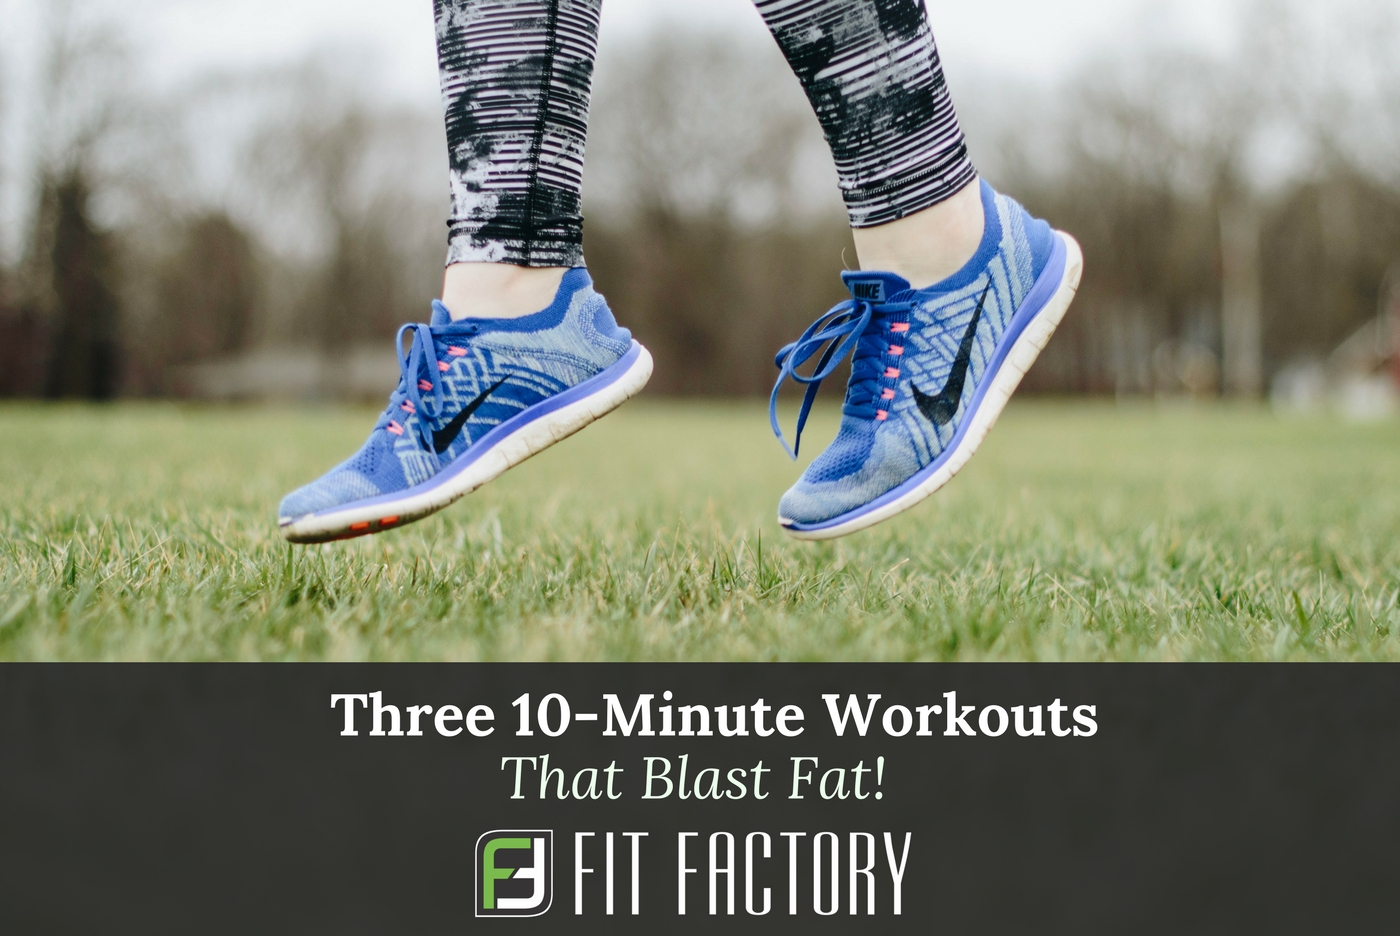 Three 10-Minute Workouts That Blast Fat